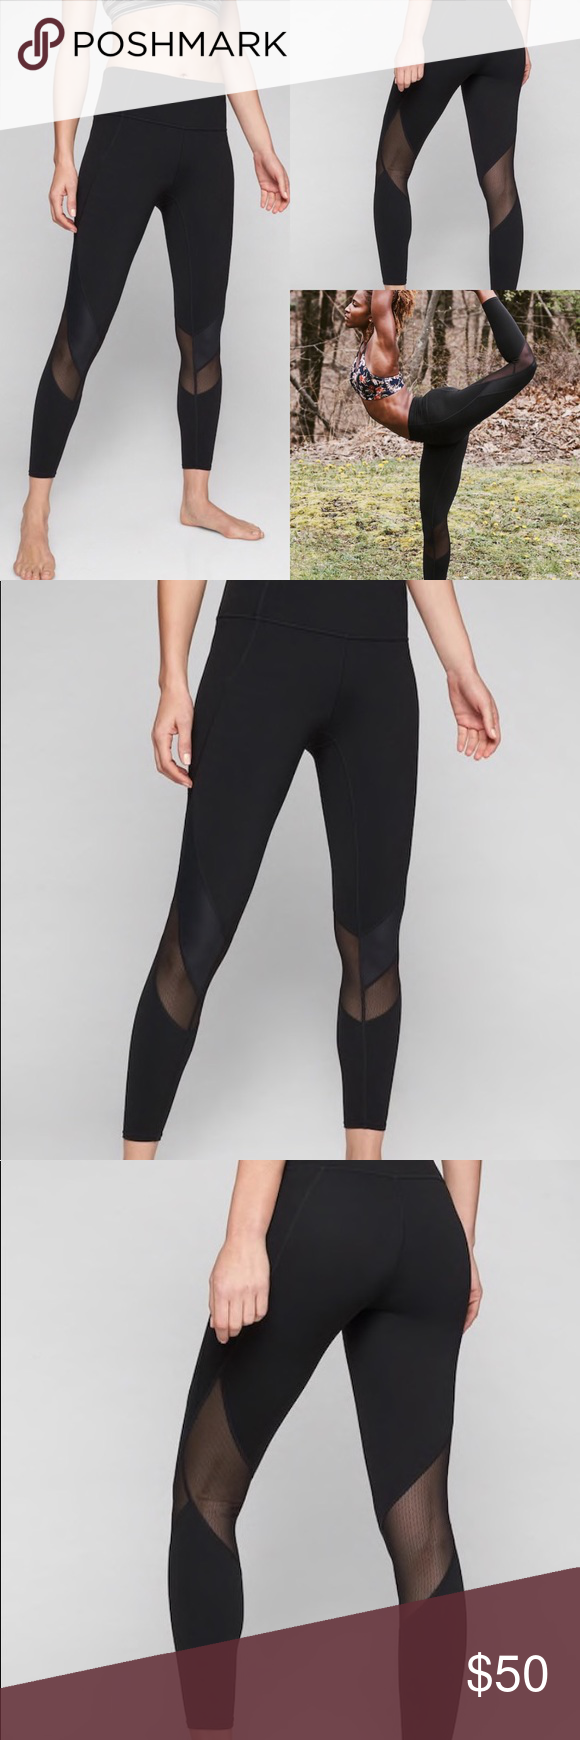 00594e9564bde Athleta Mesh Shine Salutation 7/8 Tight Fitted, High rise Fits next to the